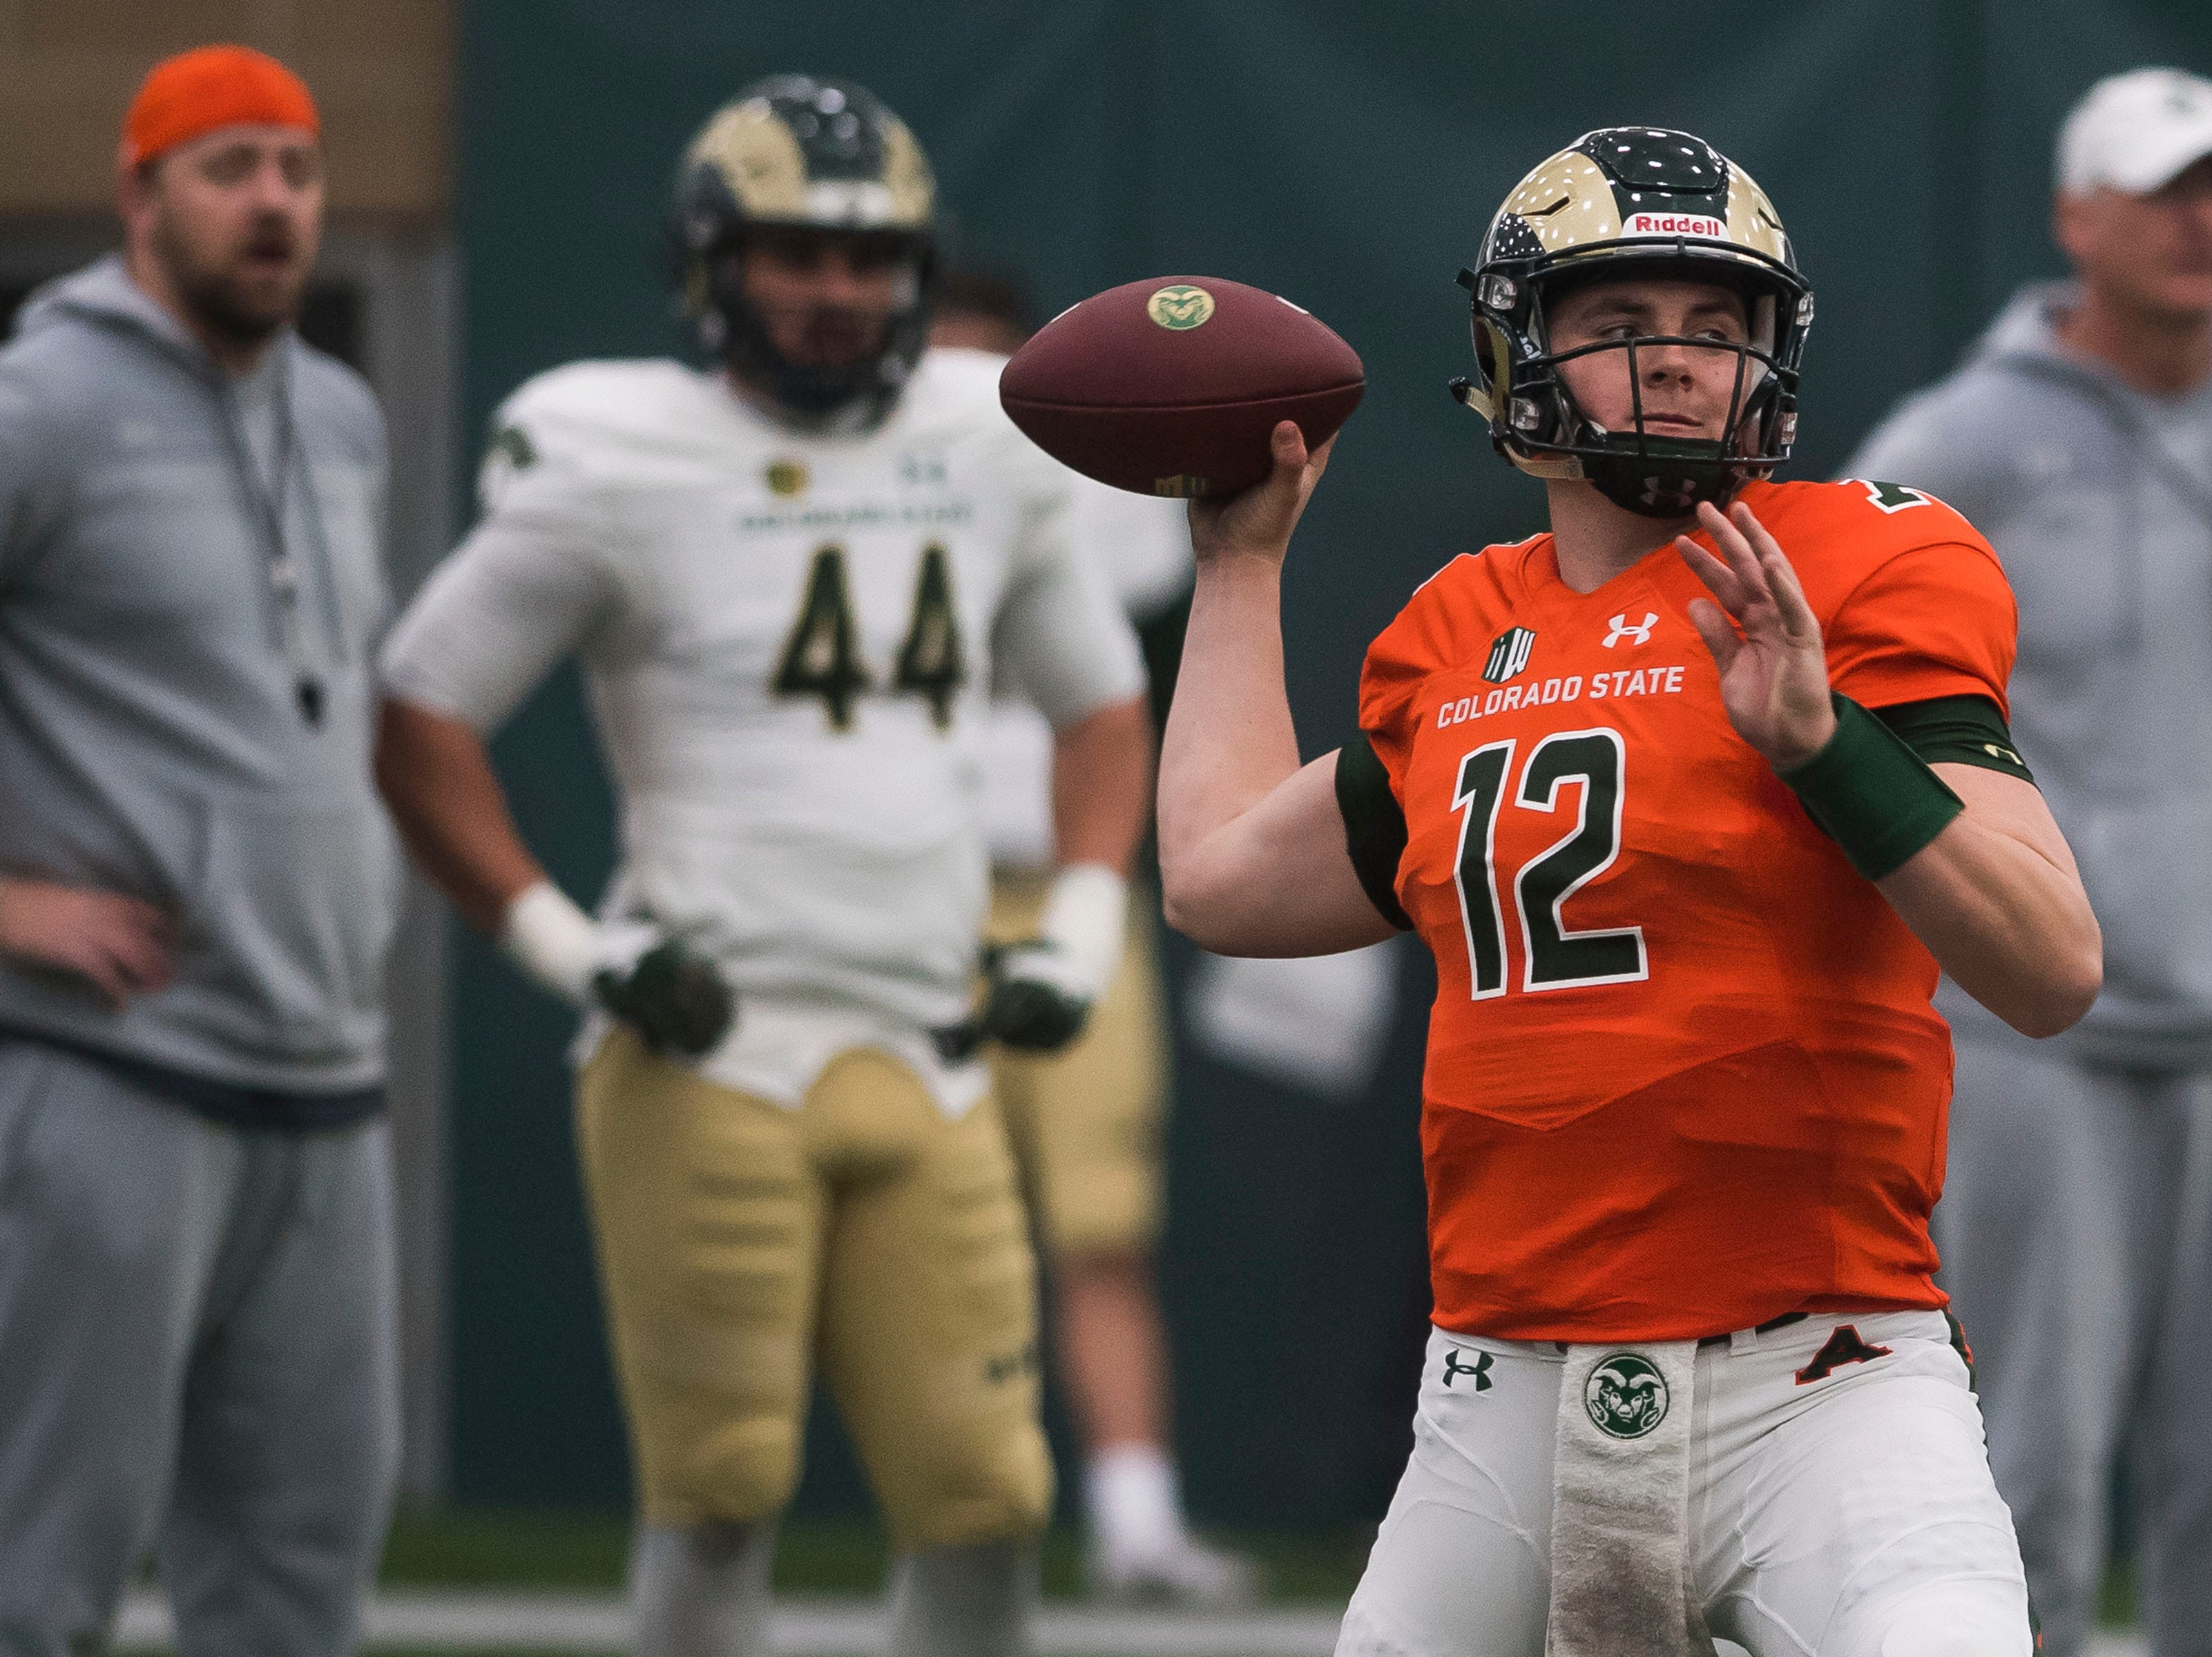 CSU junior quarterback Patrick O'Brien (12) throws during drills preceding CSU's Spring game on Thursday, March 14, 2019, at their indoor practice facility in Fort Collins, Colo.